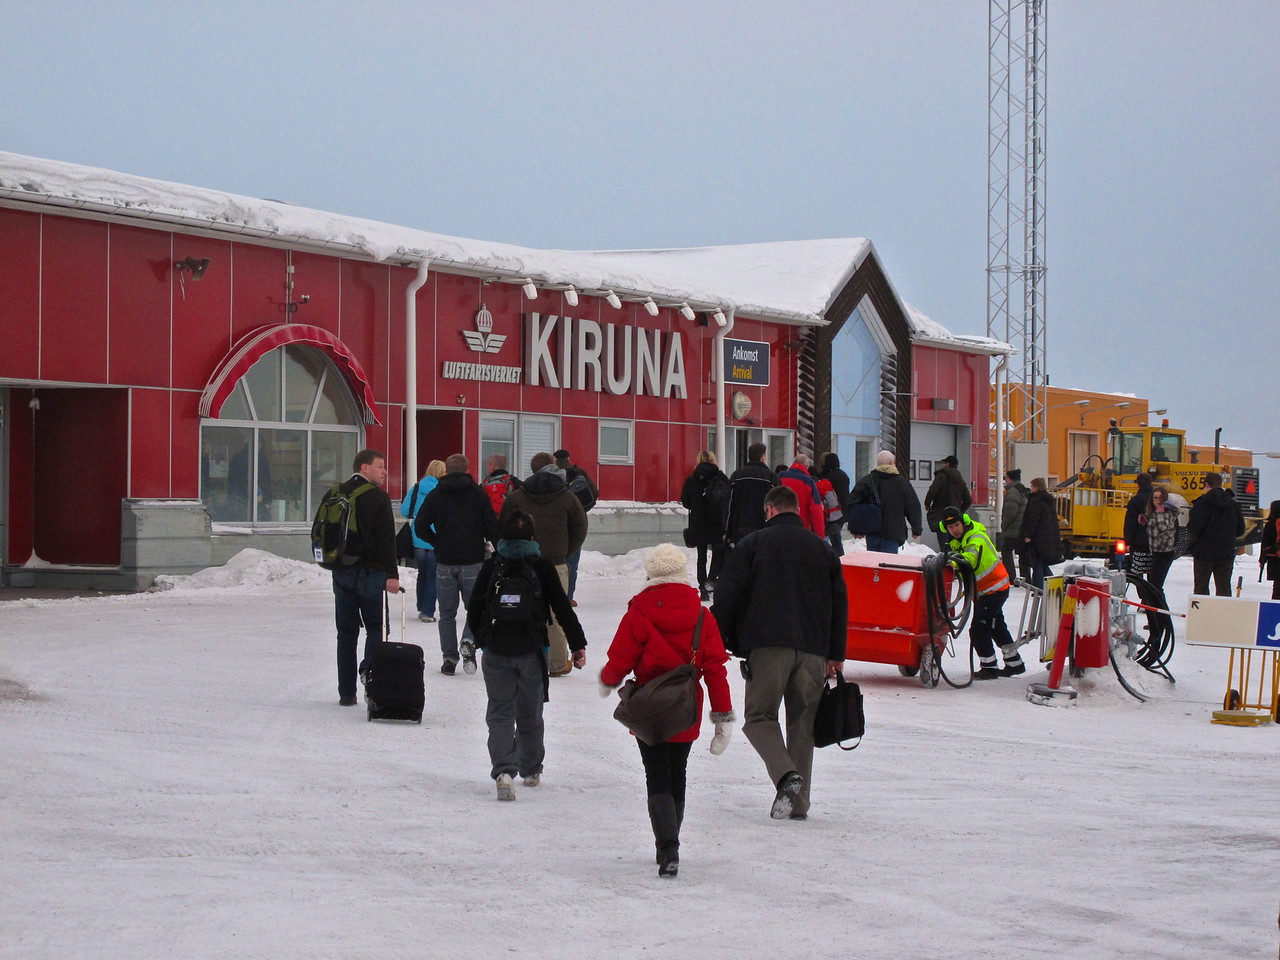 Kiruna's largest employer is the world's largest iron ore mine.  It employs over 4000 people in the area.